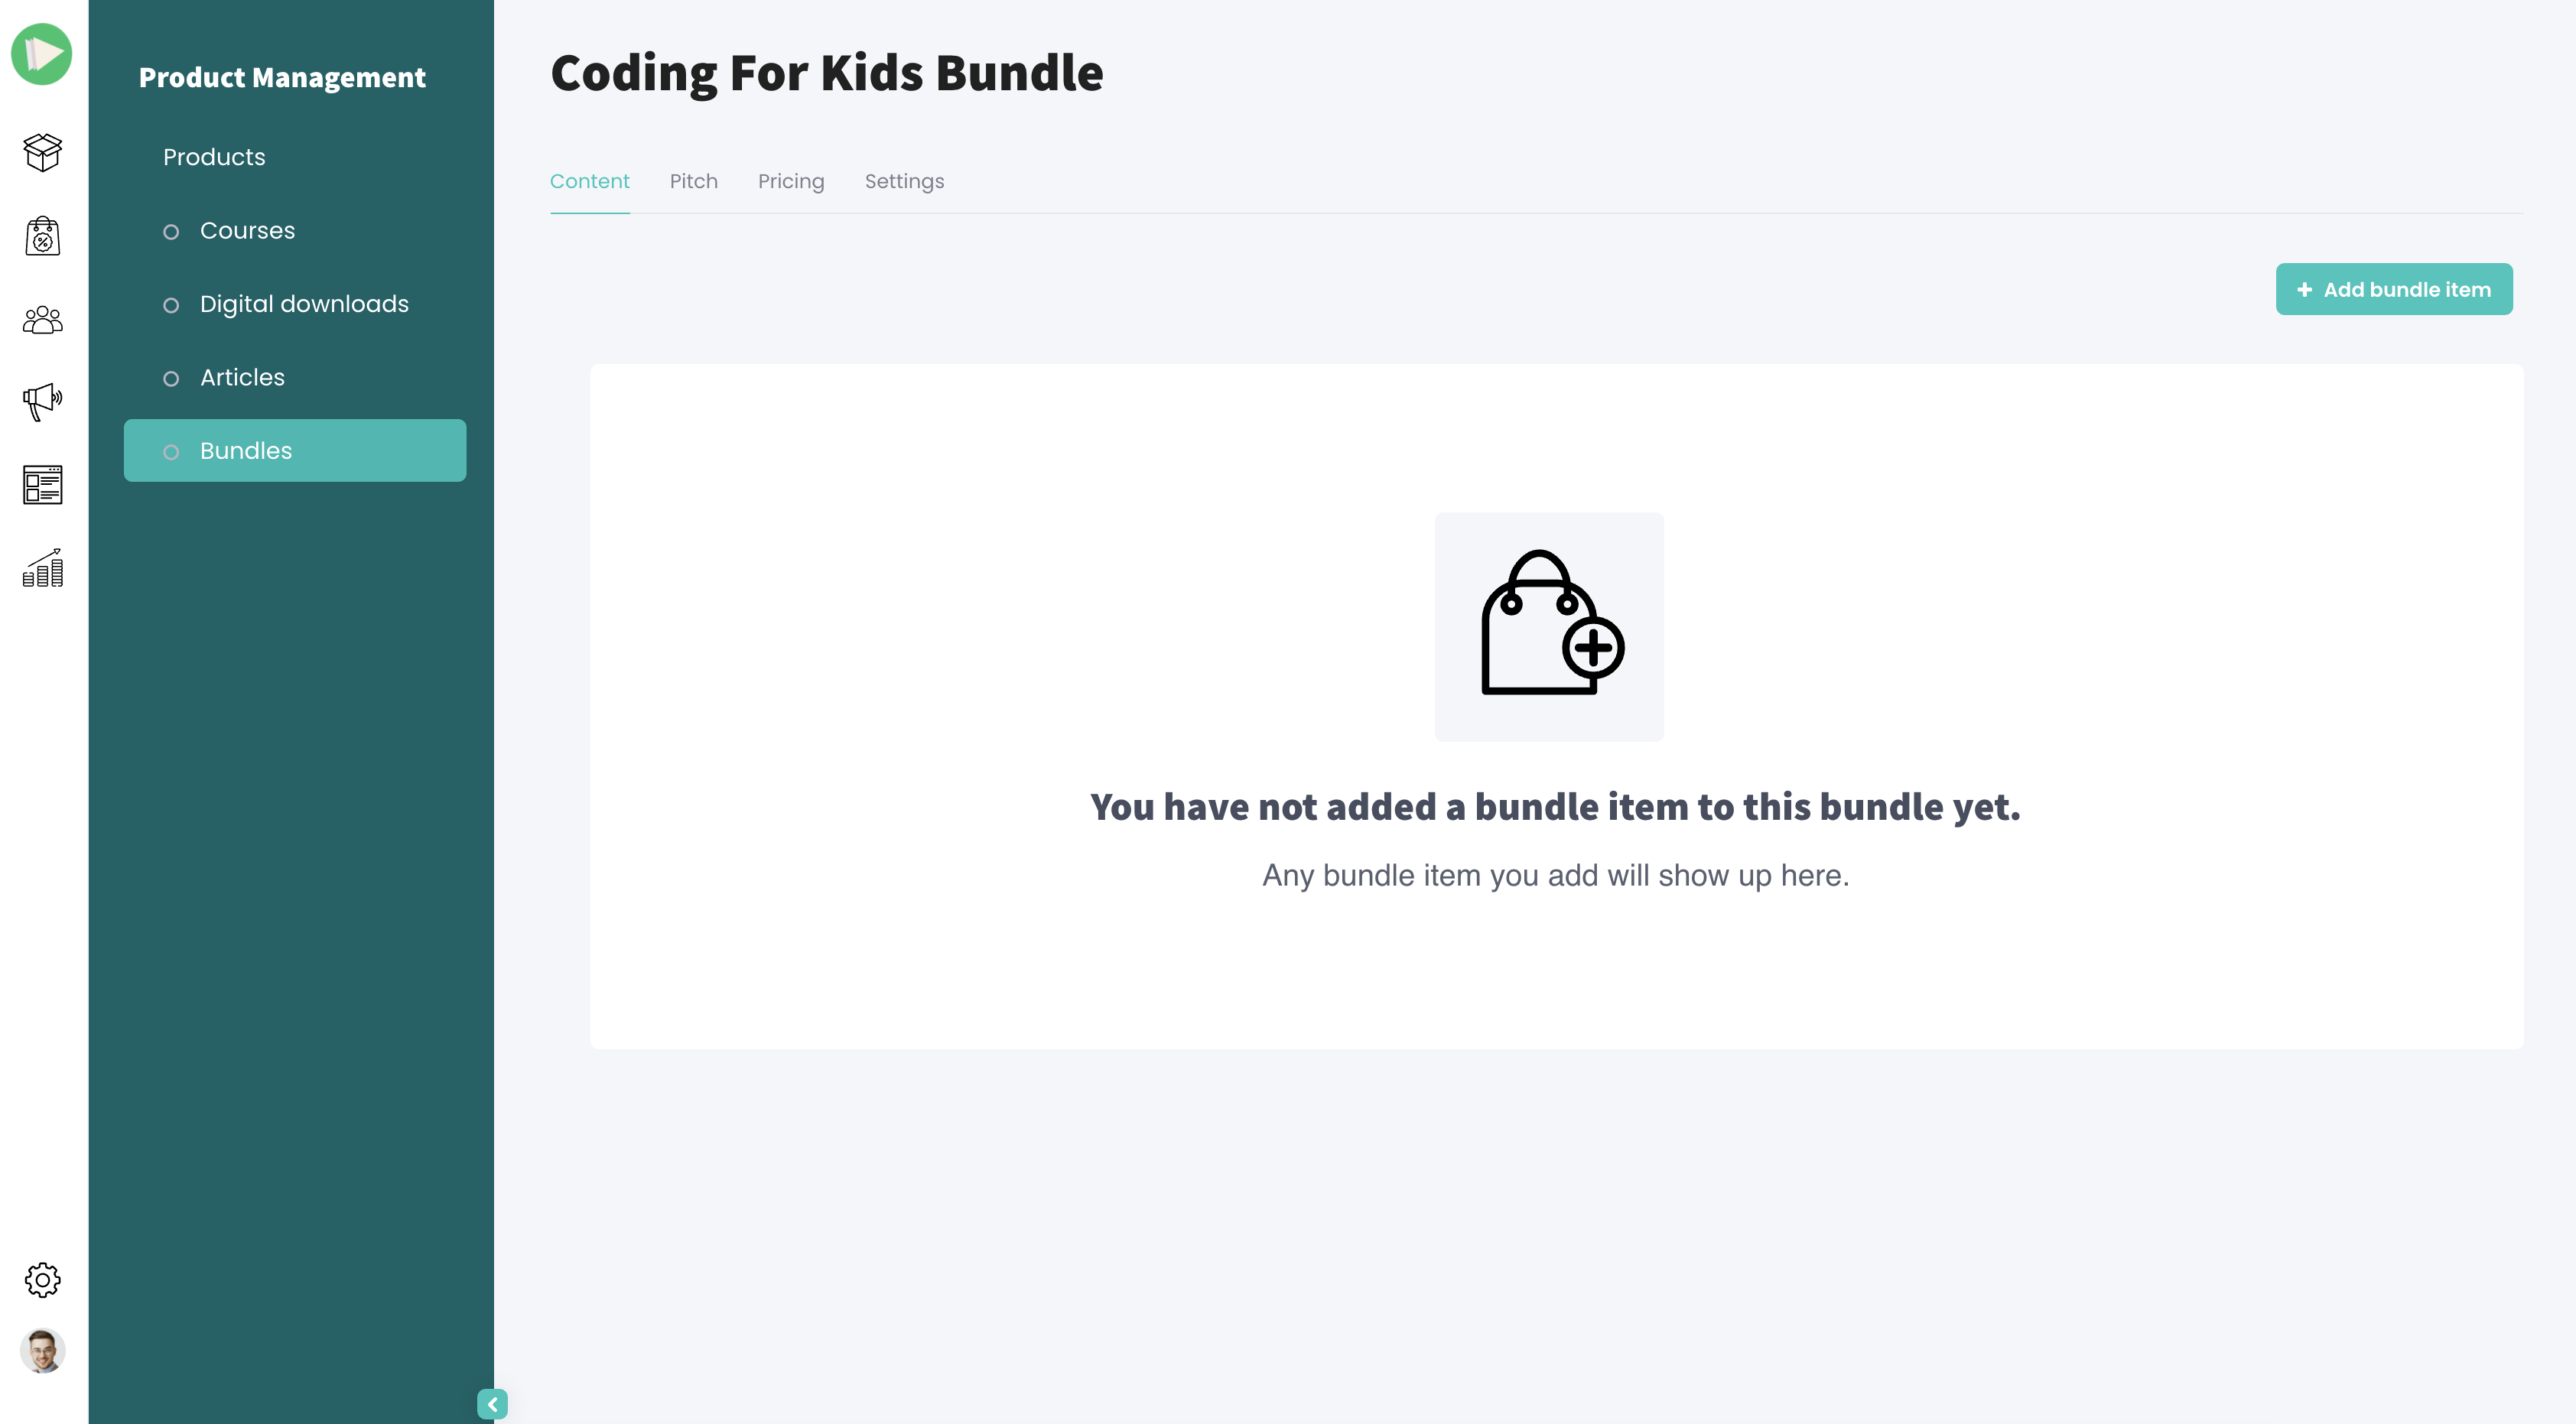 Creating a new bundle